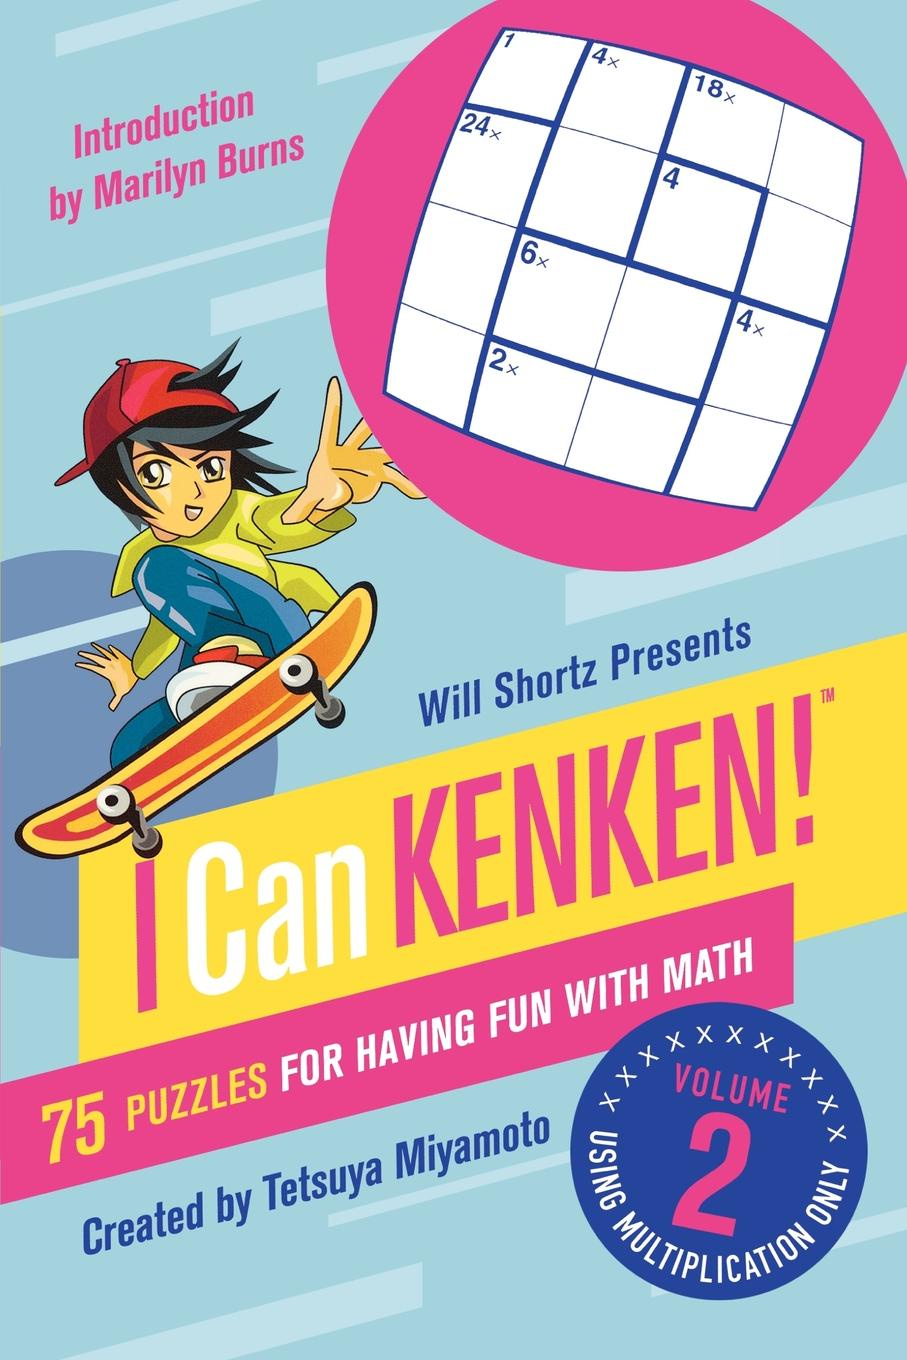 Will Shortz, Tetsuya Miyamoto Will Shortz Presents I Can Kenken!, Volume 2. 75 Puzzles for Having Fun with Math